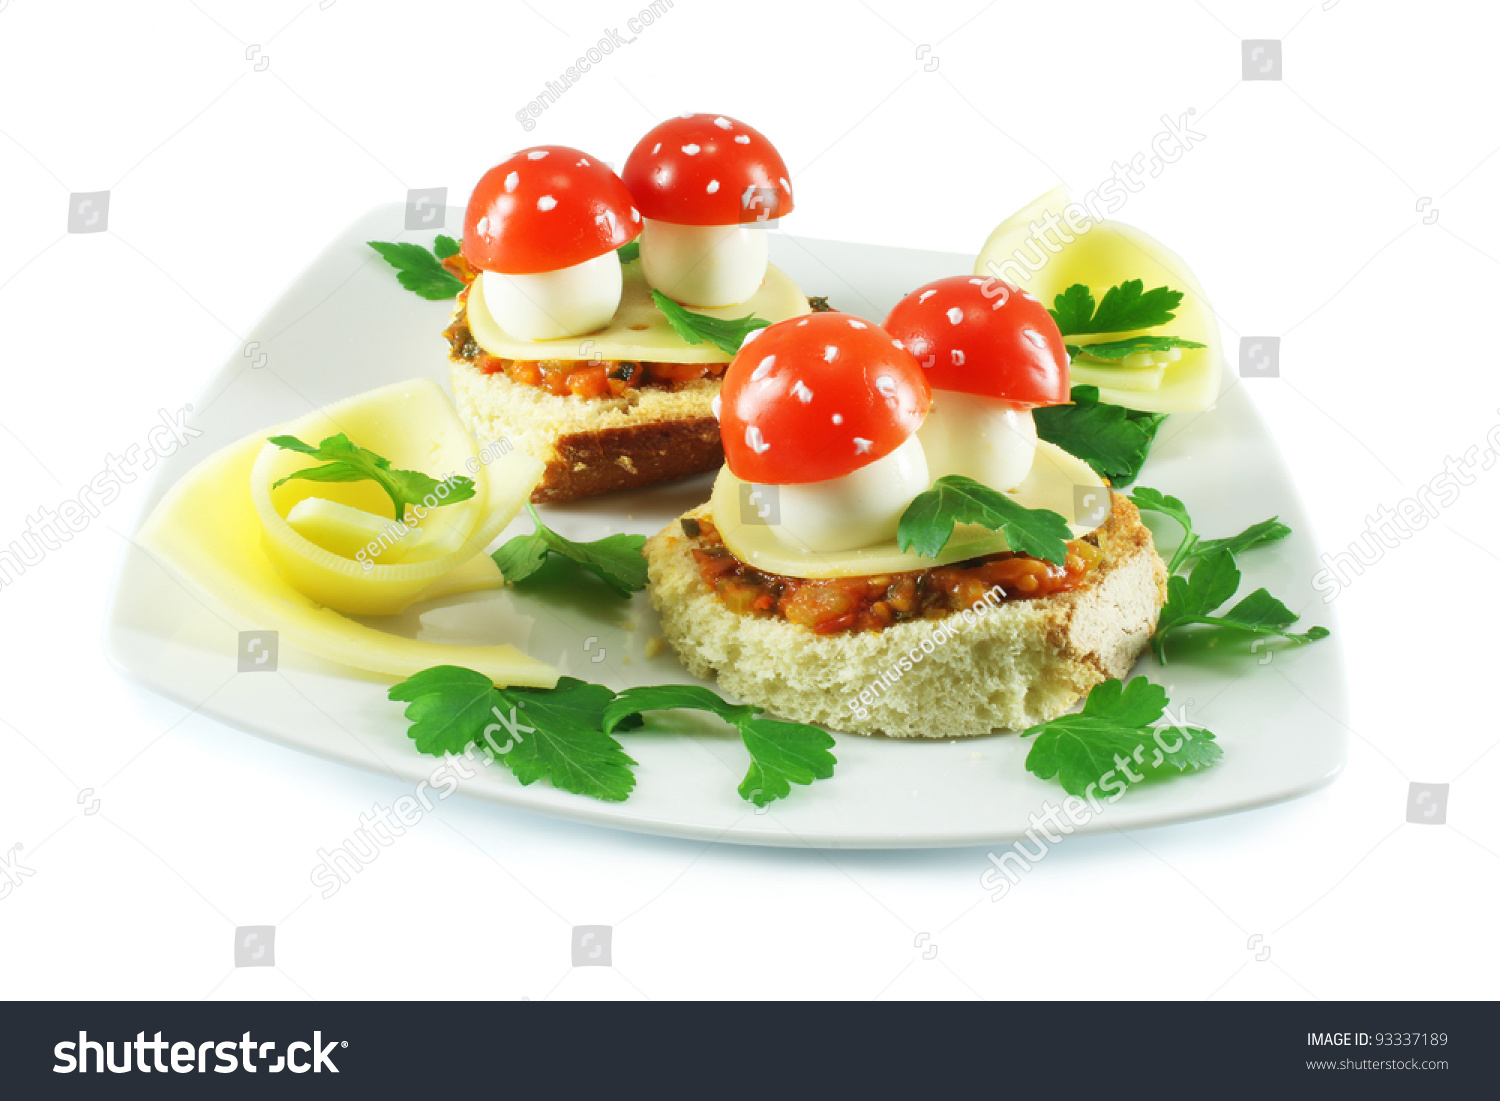 Small sandwiches canap s with quail eggs cherry tomatoes for Quail egg canape